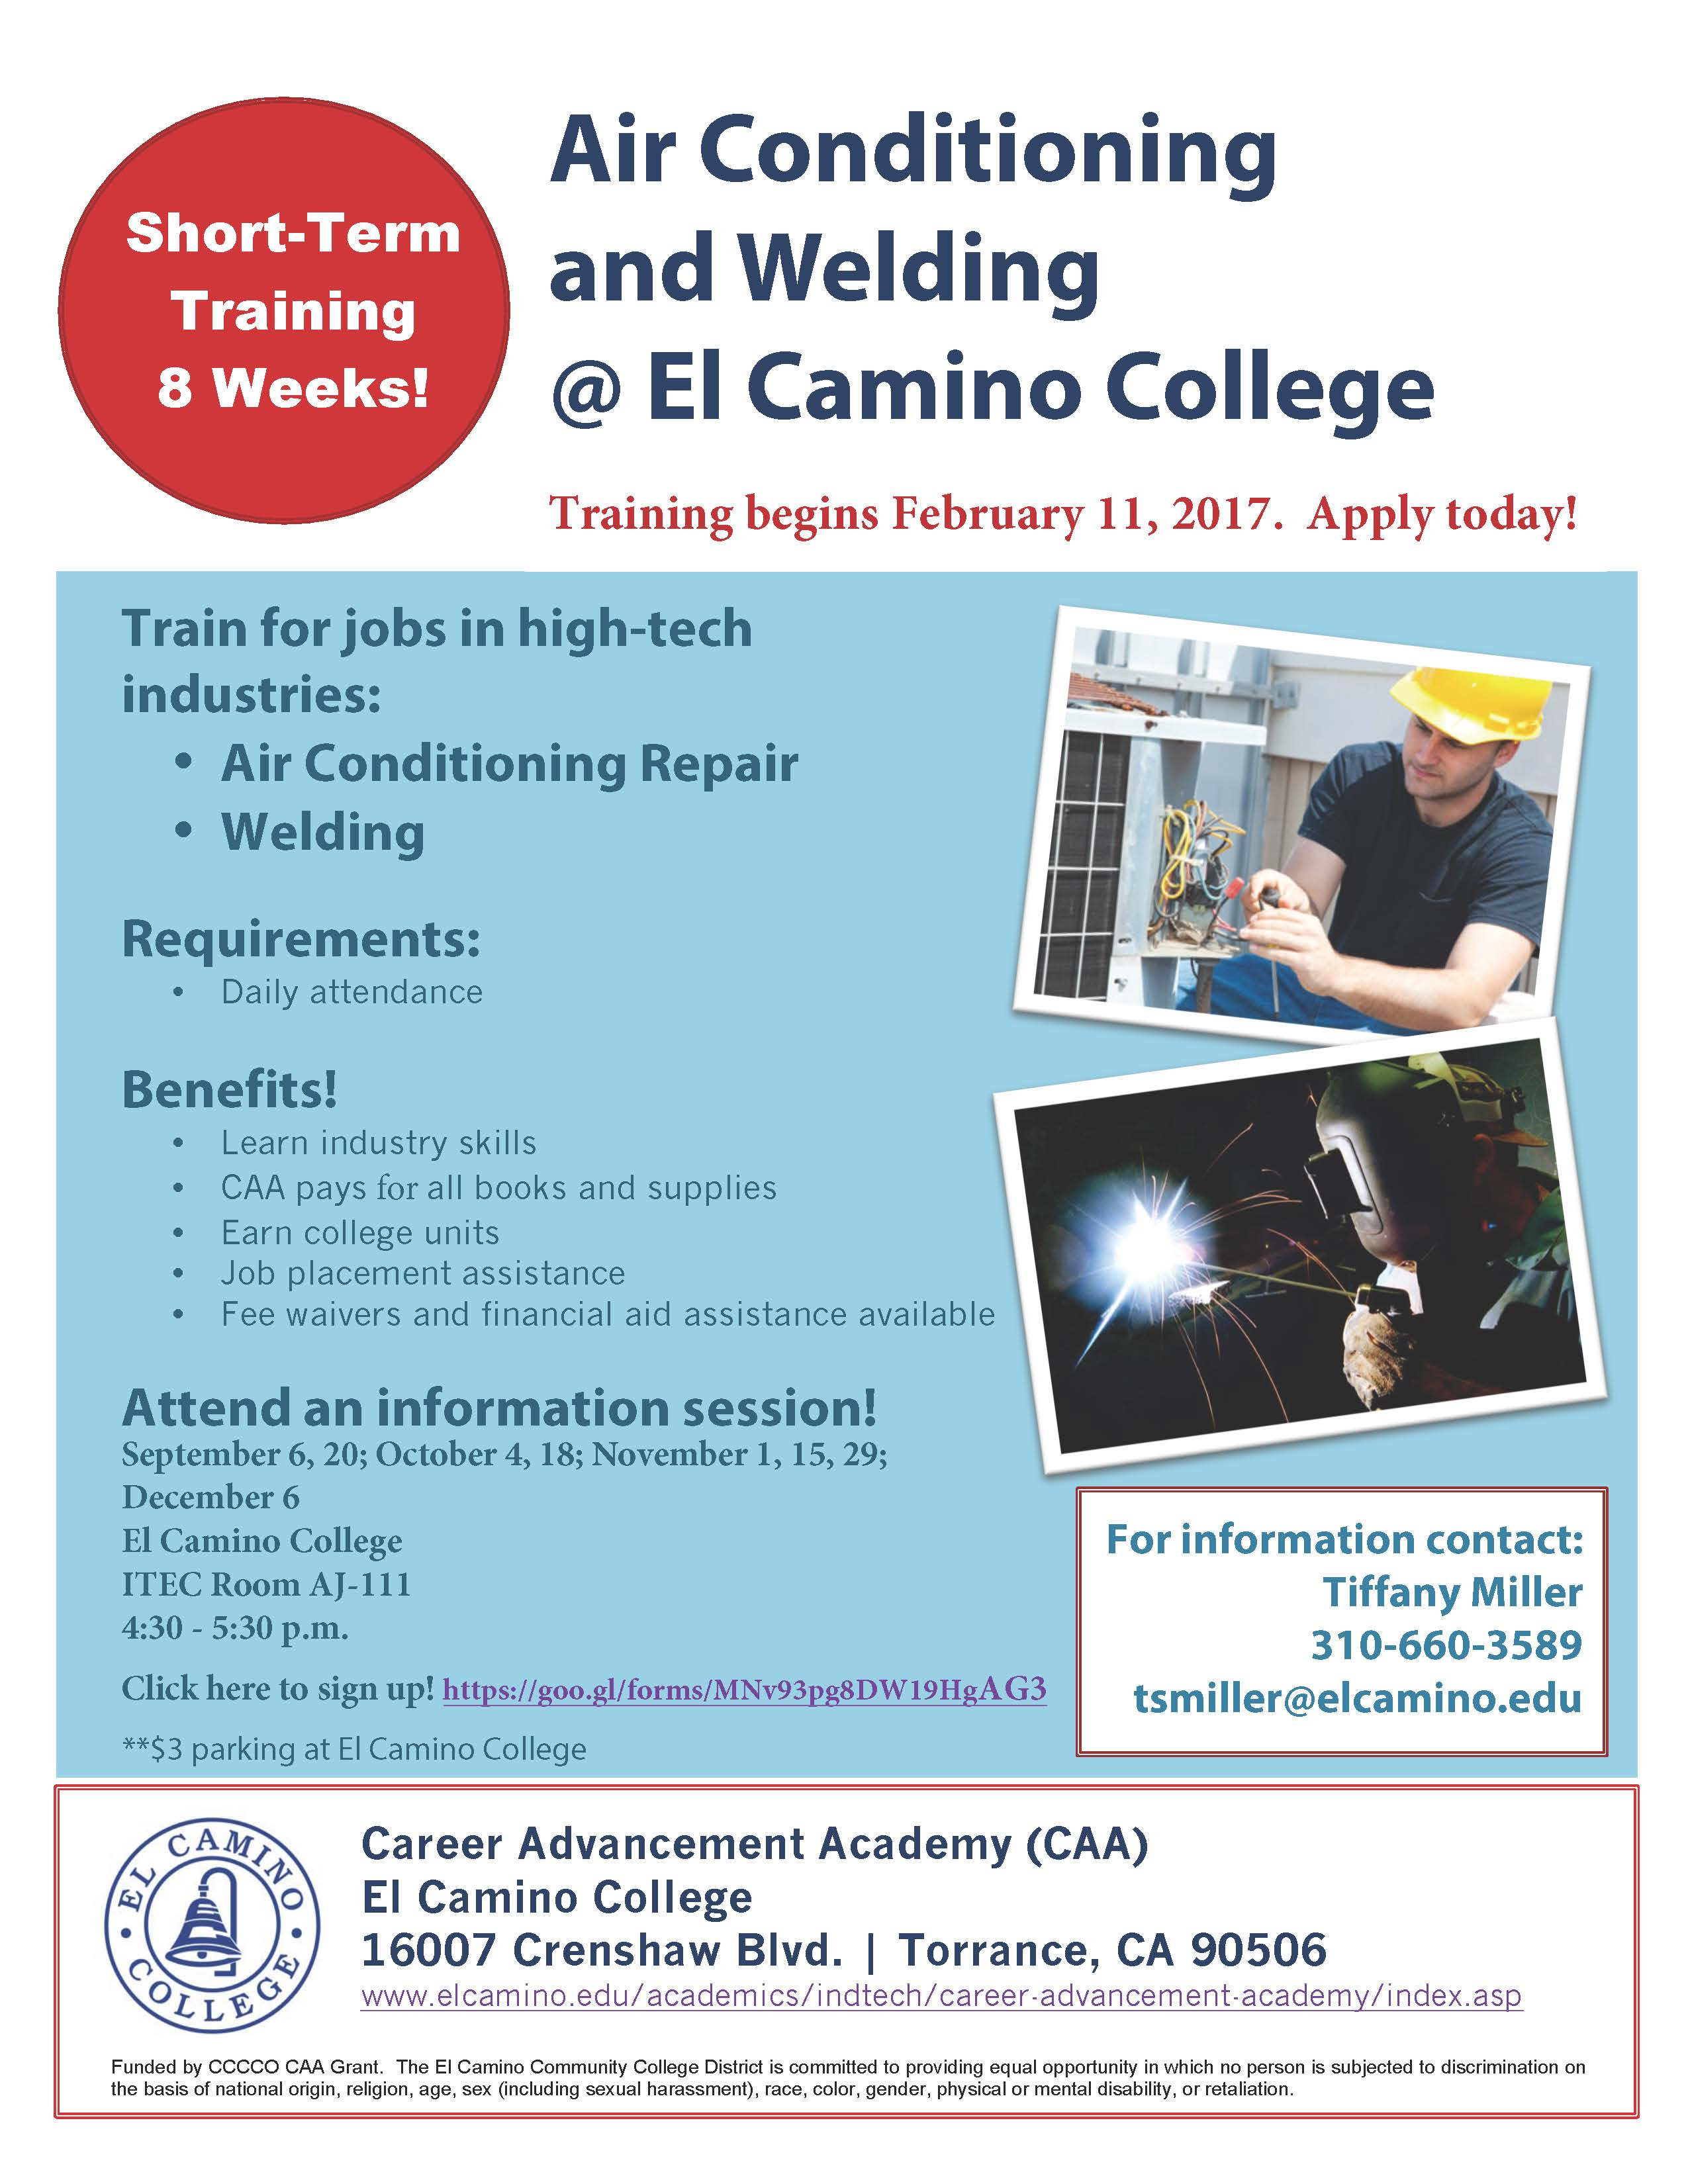 Welding requirements for tool machine technology subjects in el camino college